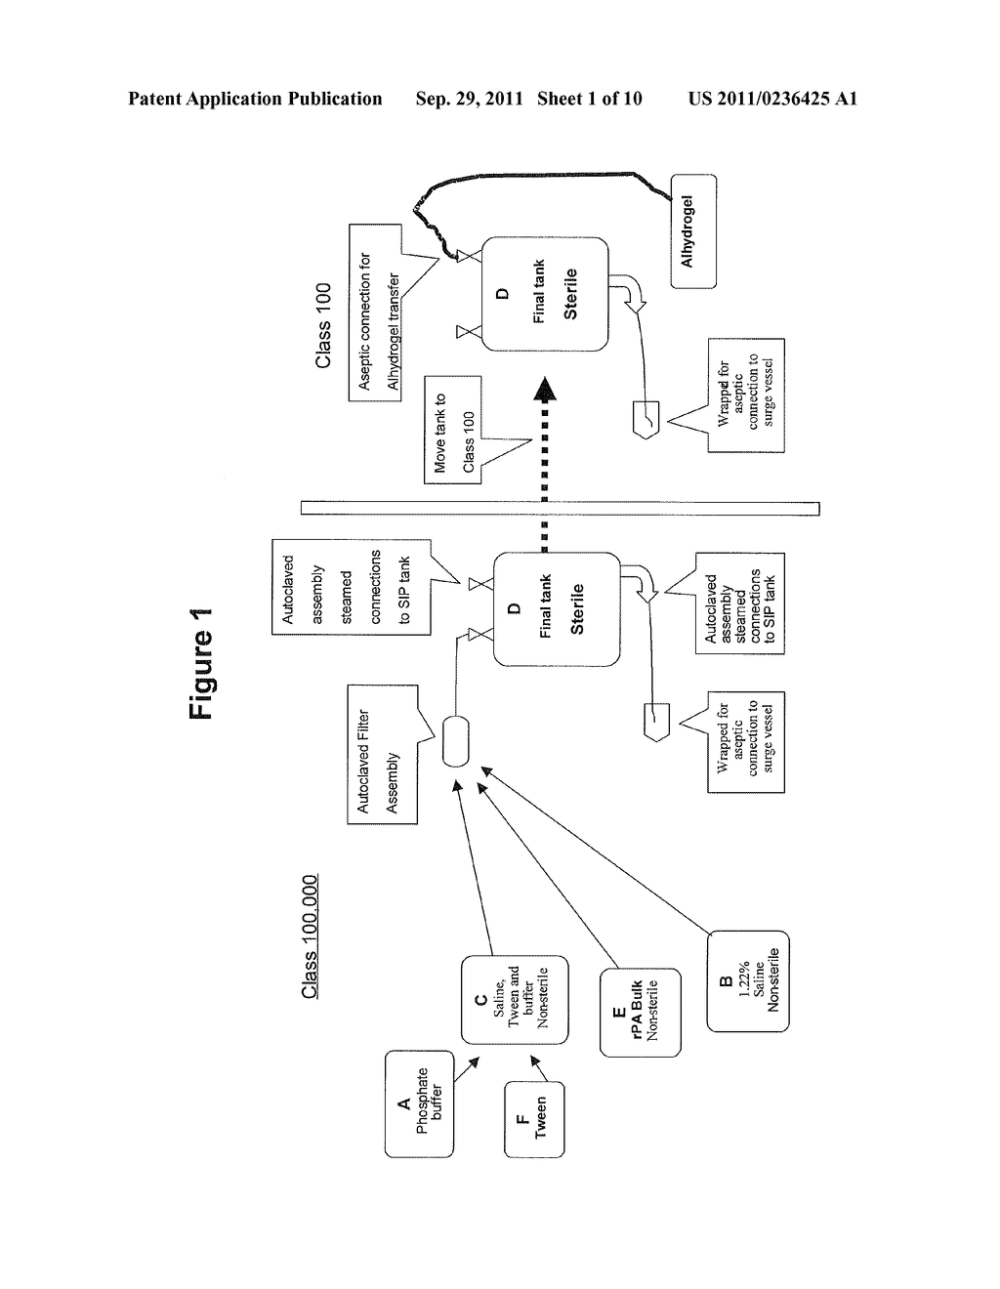 medium resolution of anthrax vaccine formulation and uses thereof diagram schematic and image 02